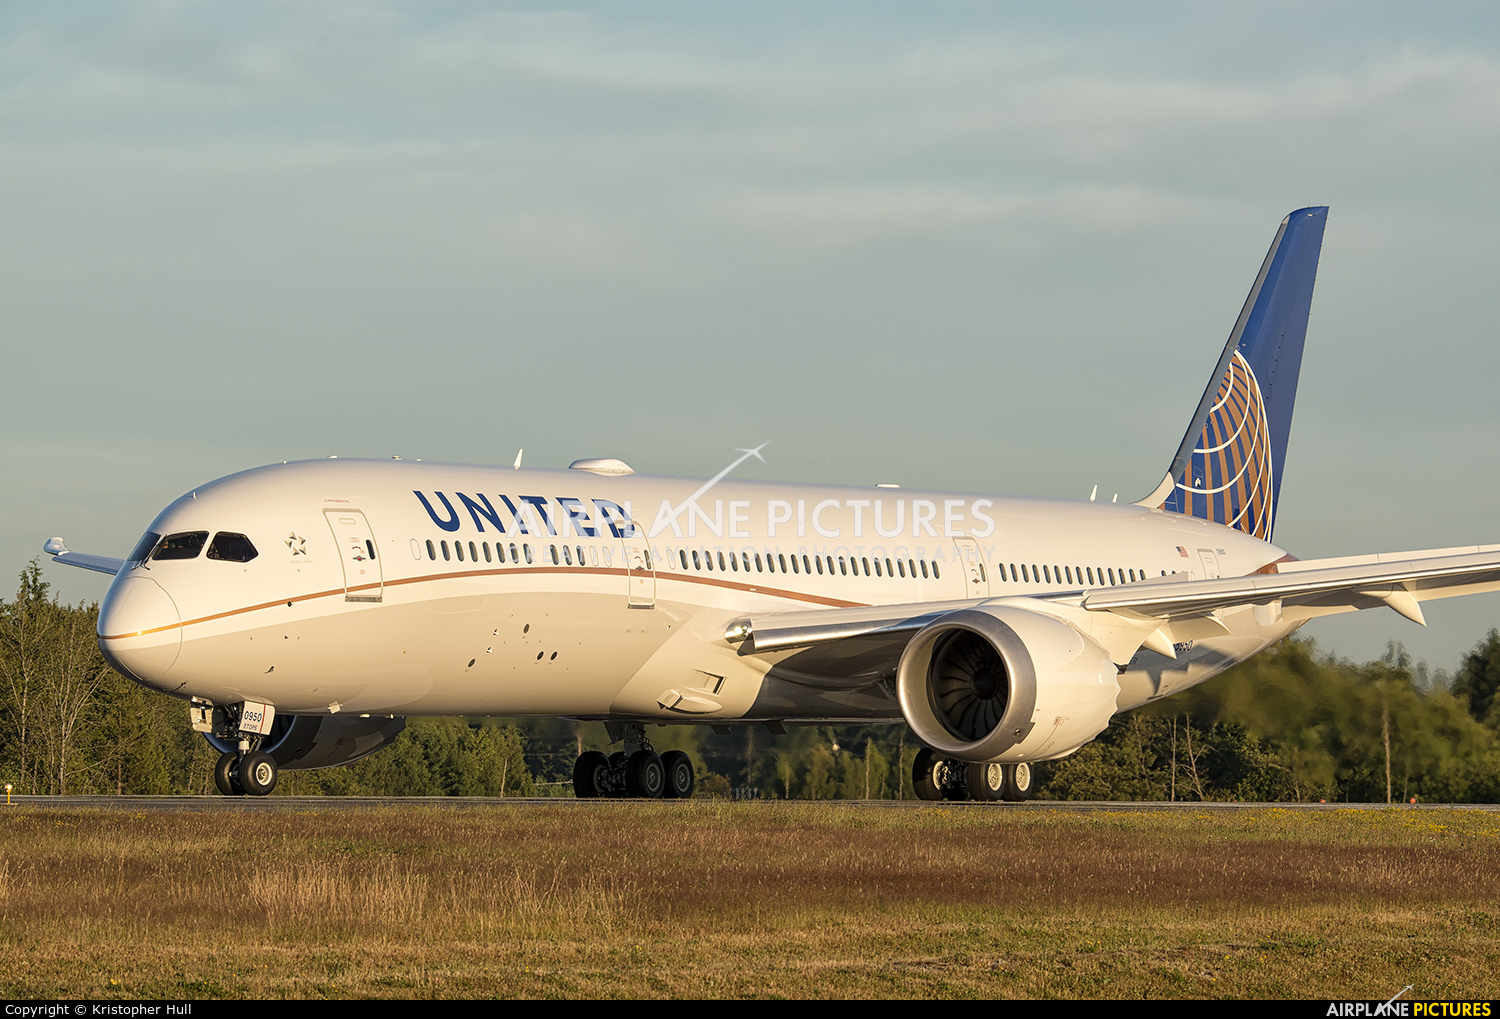 N38950 - United Airlines Boeing - 1121.3KB